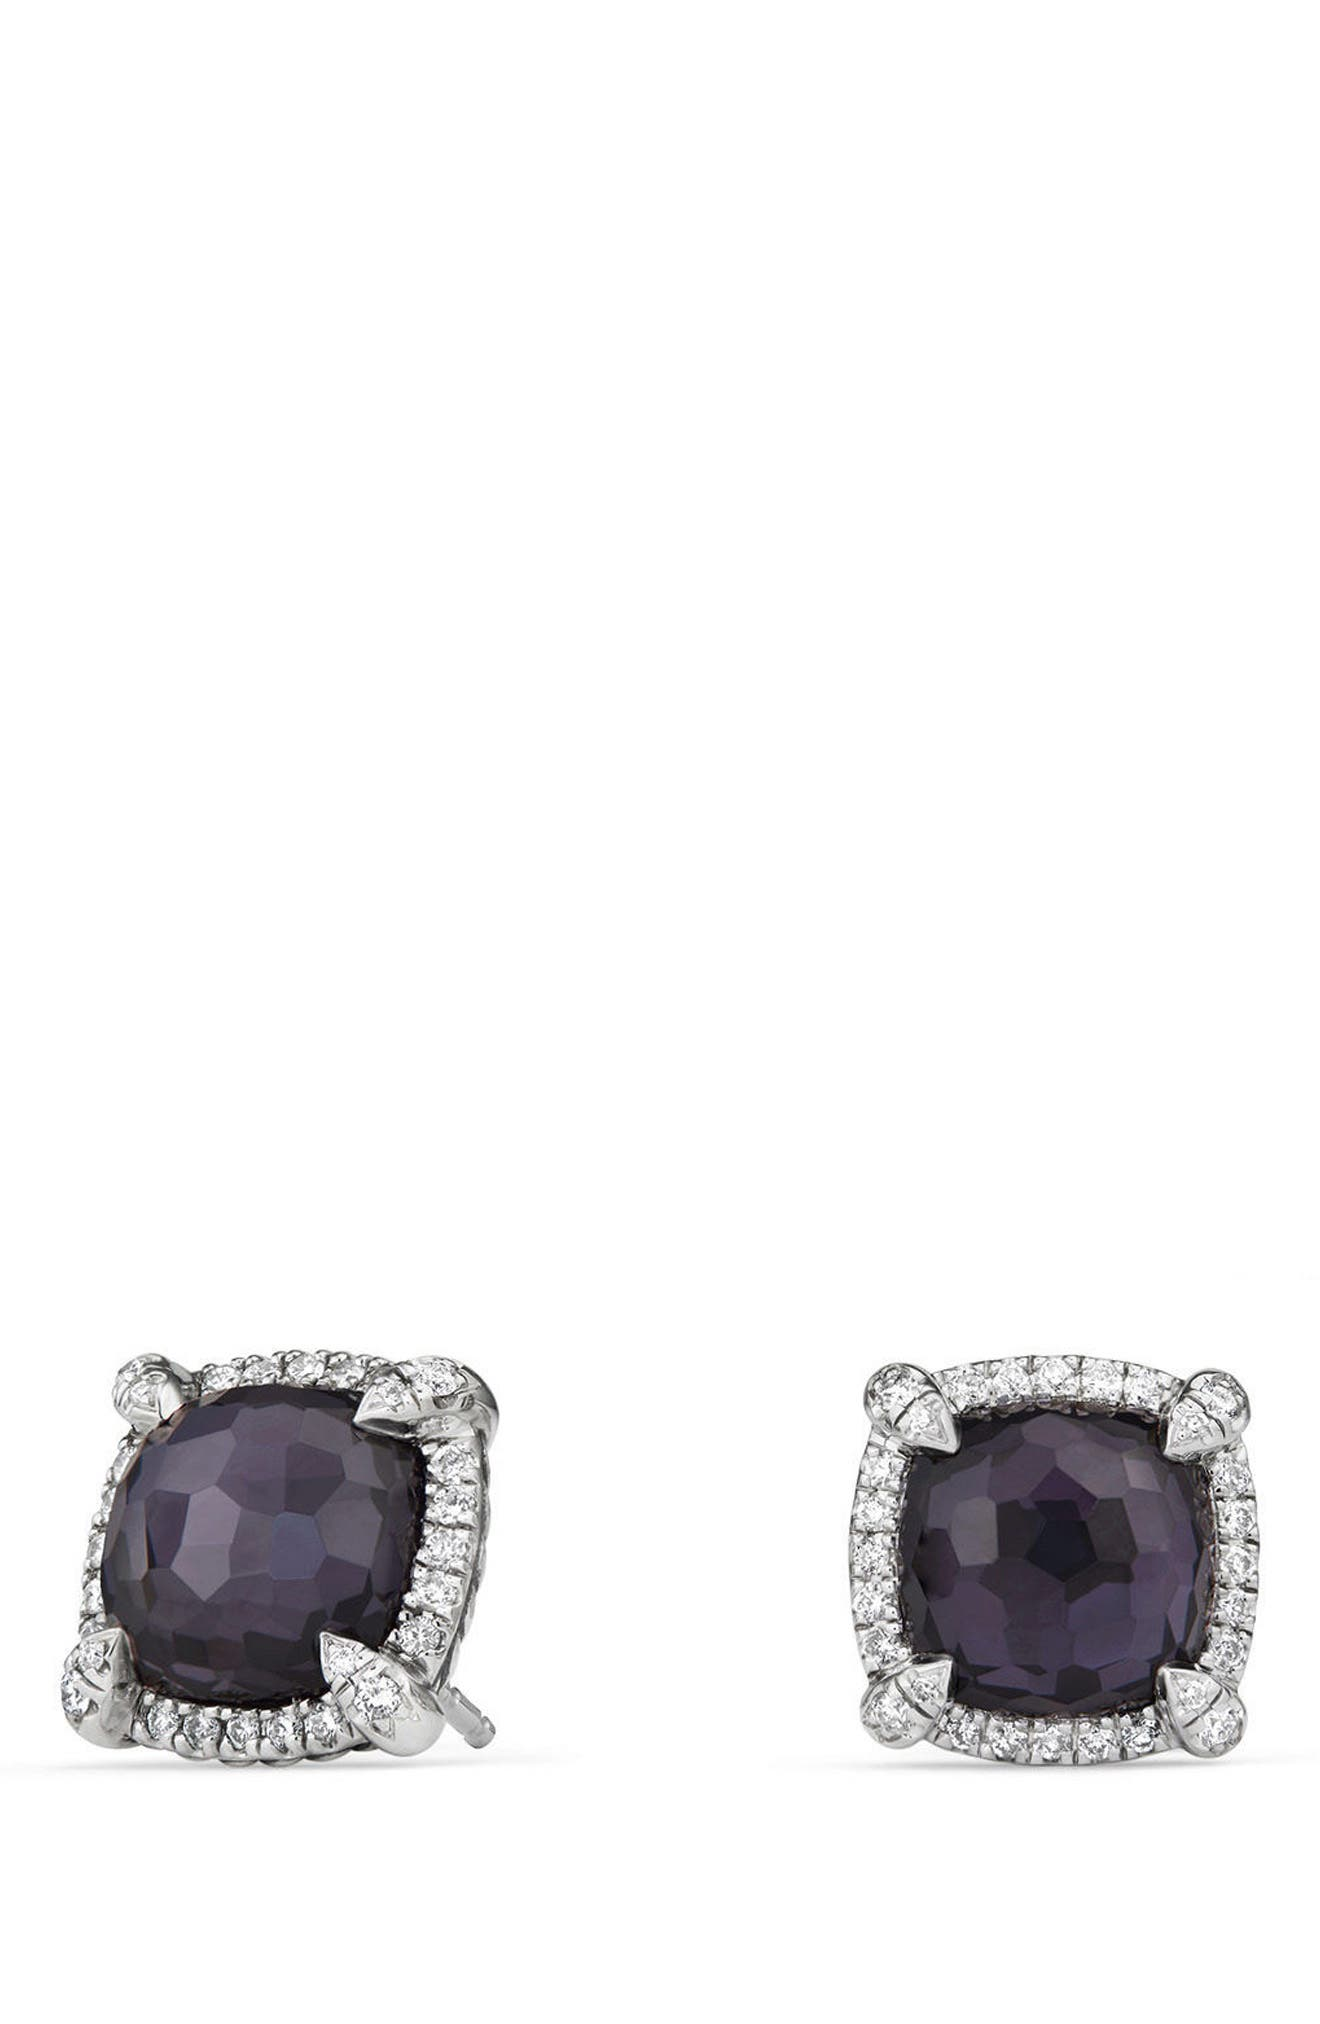 Chatelaine Pavé Bezel Earring with Black Orchid and Diamonds, 9mm,                             Main thumbnail 1, color,                             AMETHYST/ HEMETINE